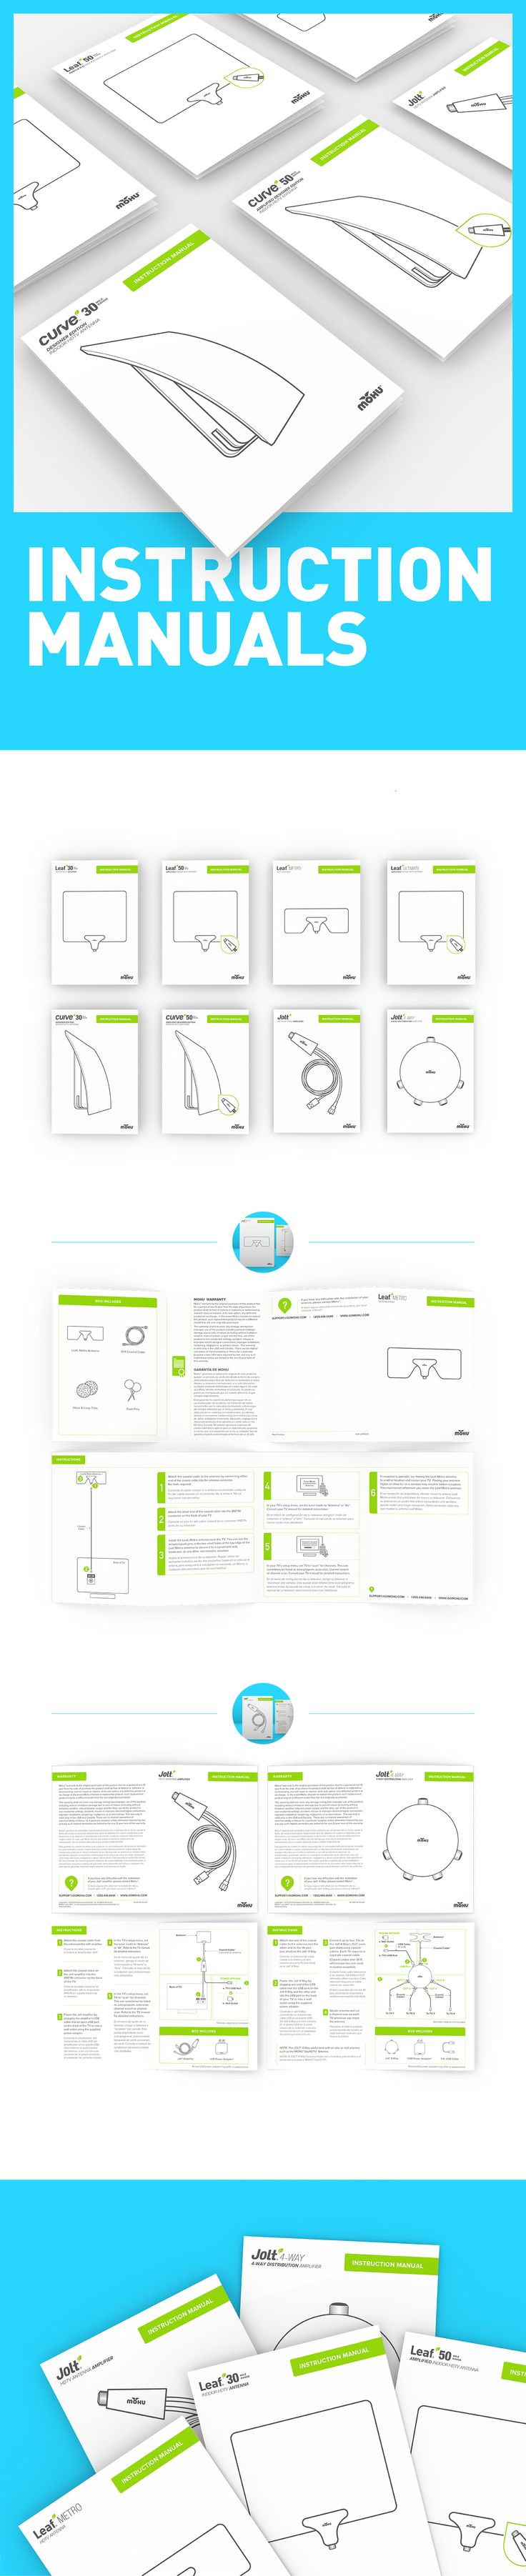 Instruction manuals created for Mohu product line.